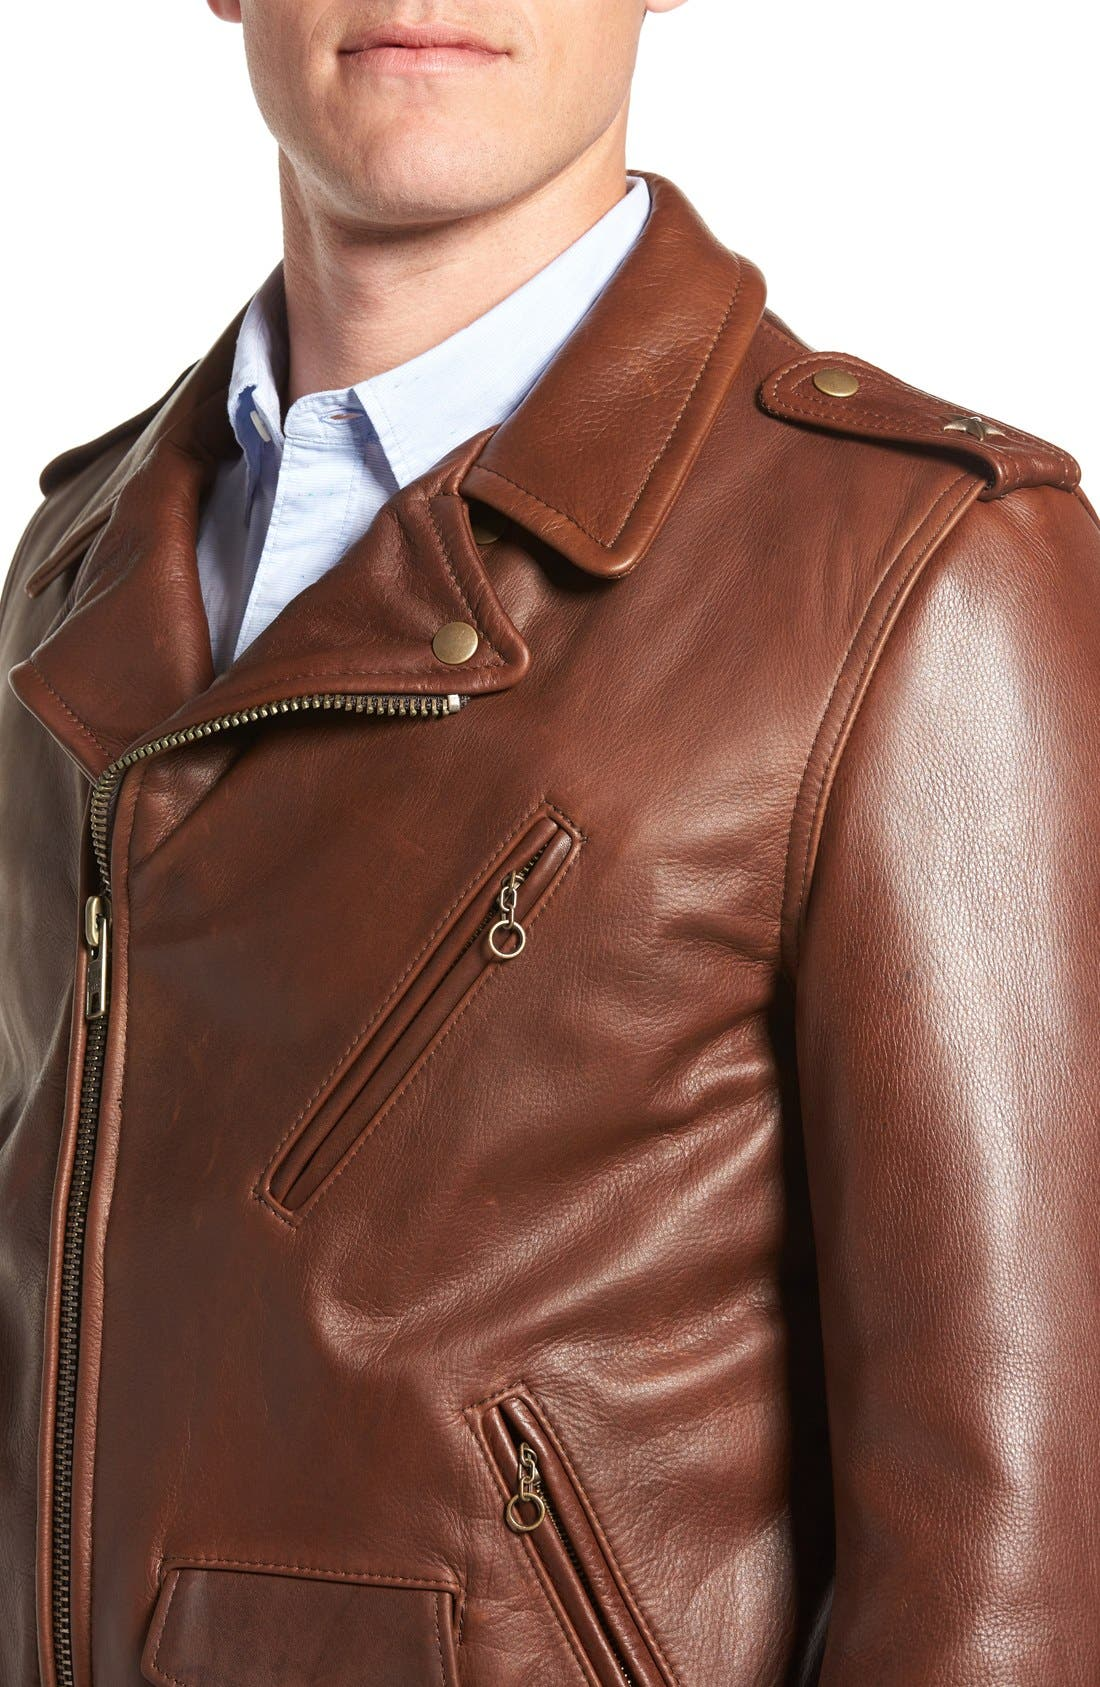 '50s Oil Tanned Cowhide Leather Moto Jacket,                             Alternate thumbnail 10, color,                             BROWN